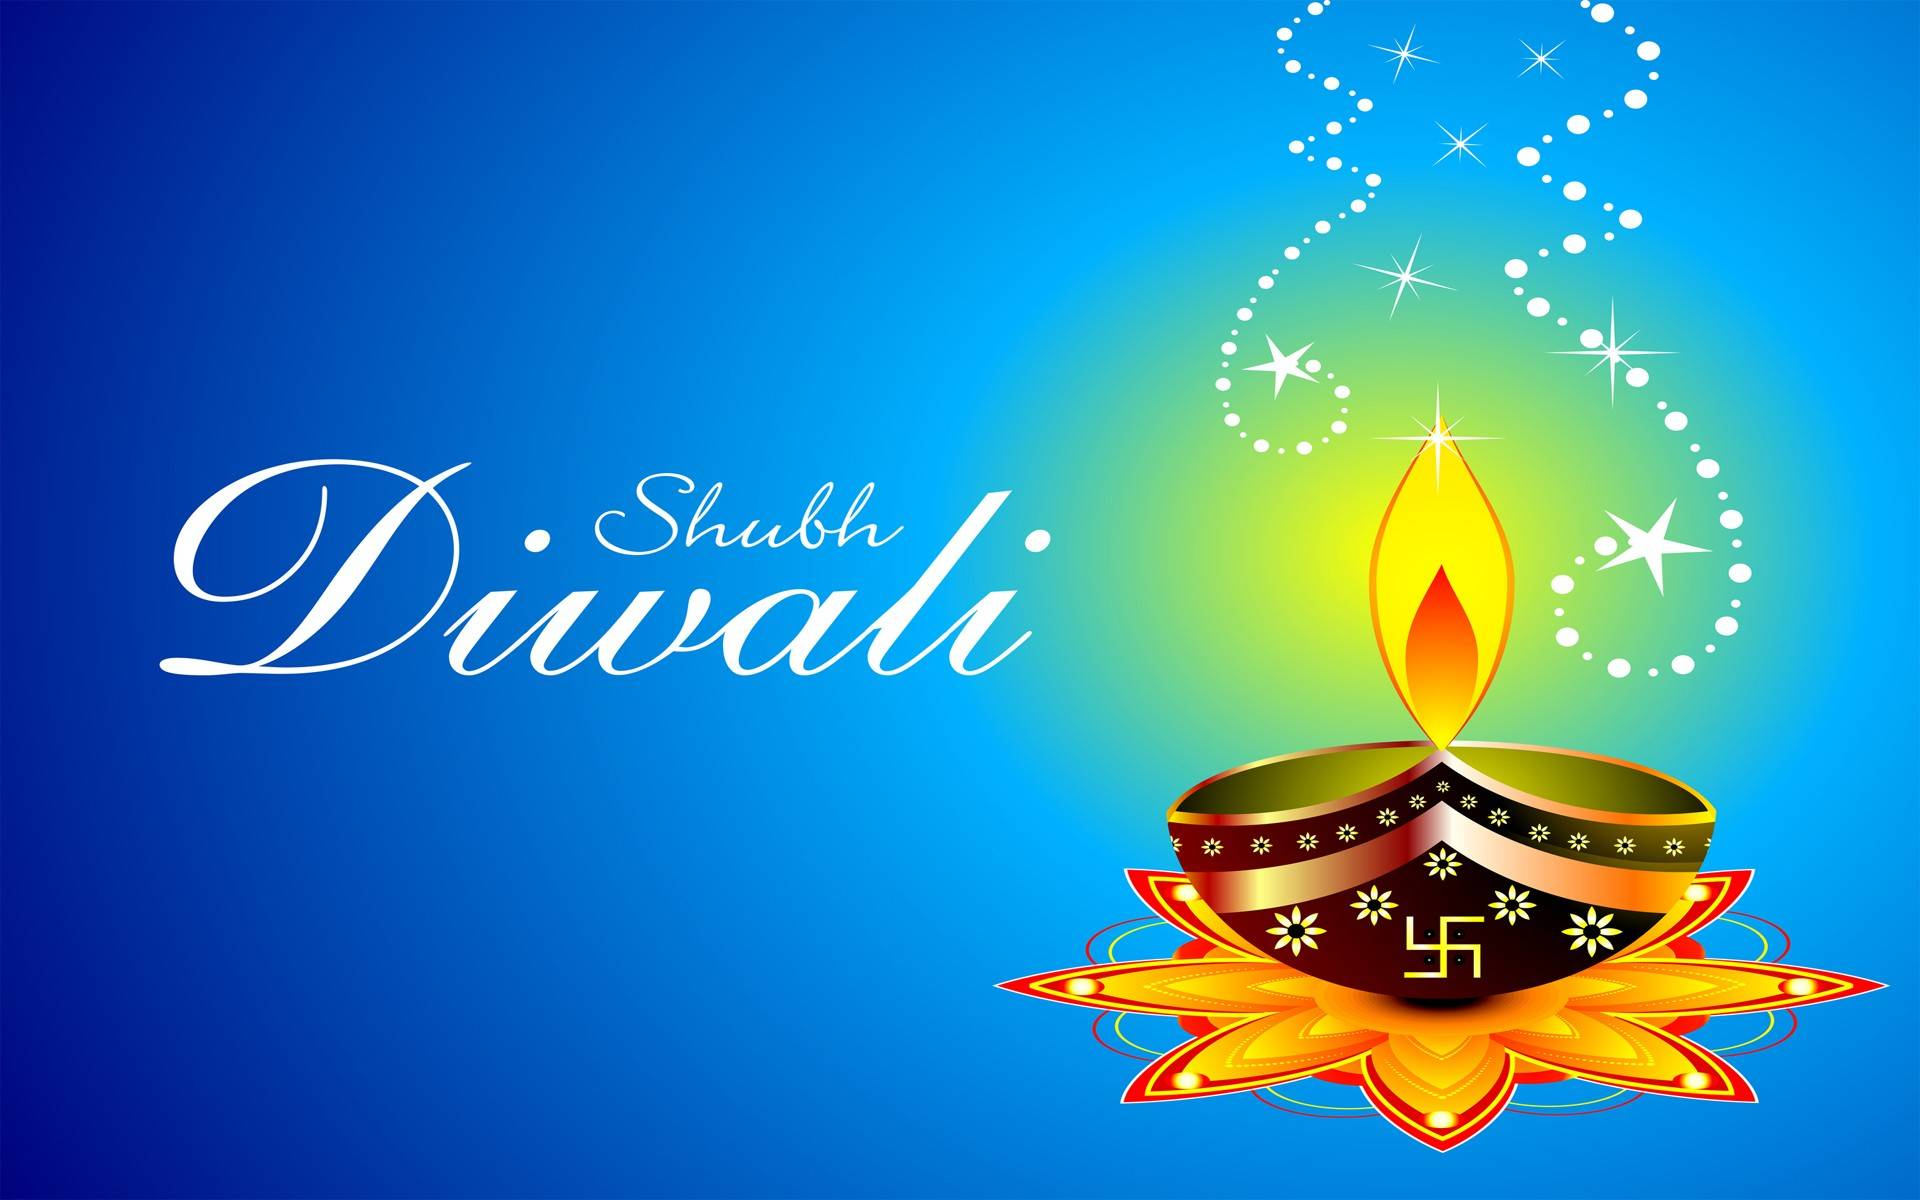 shubh diwali images download free in hd